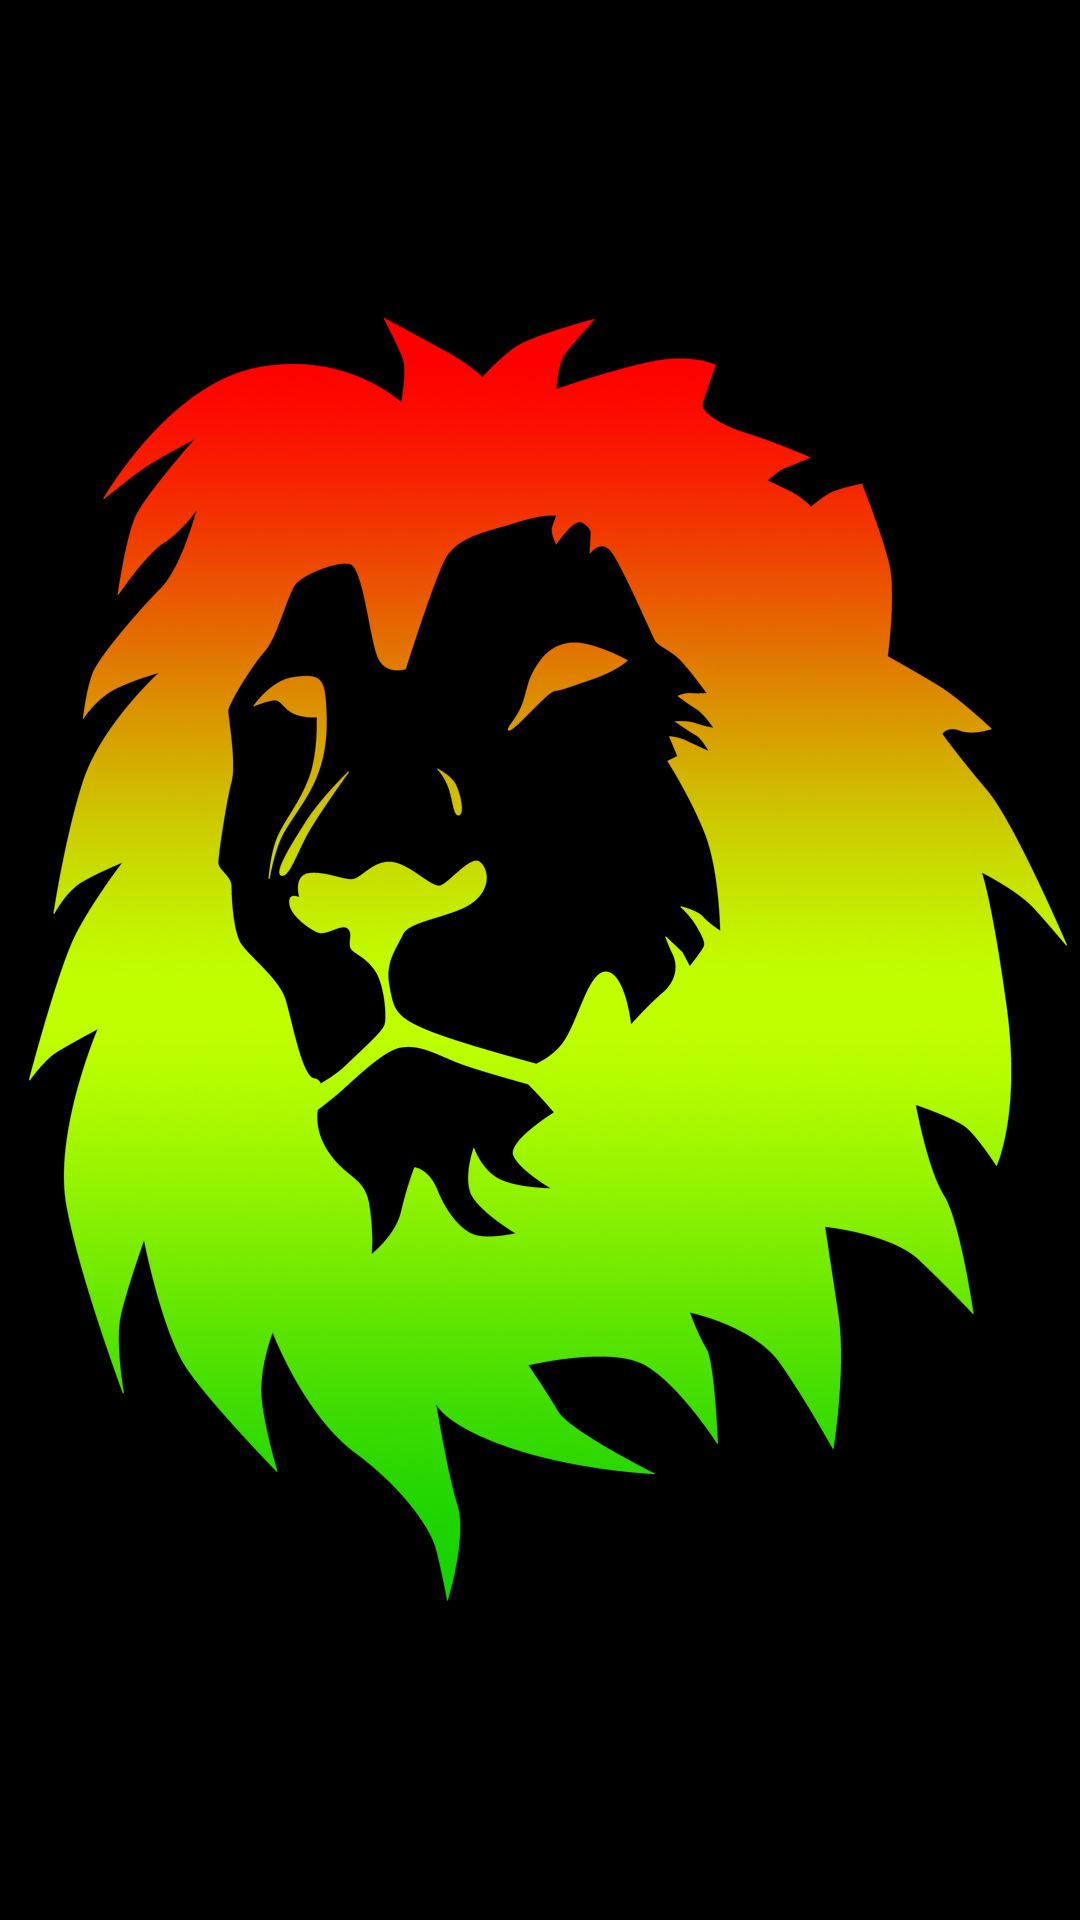 Rasta Lion Wallpapers 30 Wallpapers Hd Wallpapers Lion